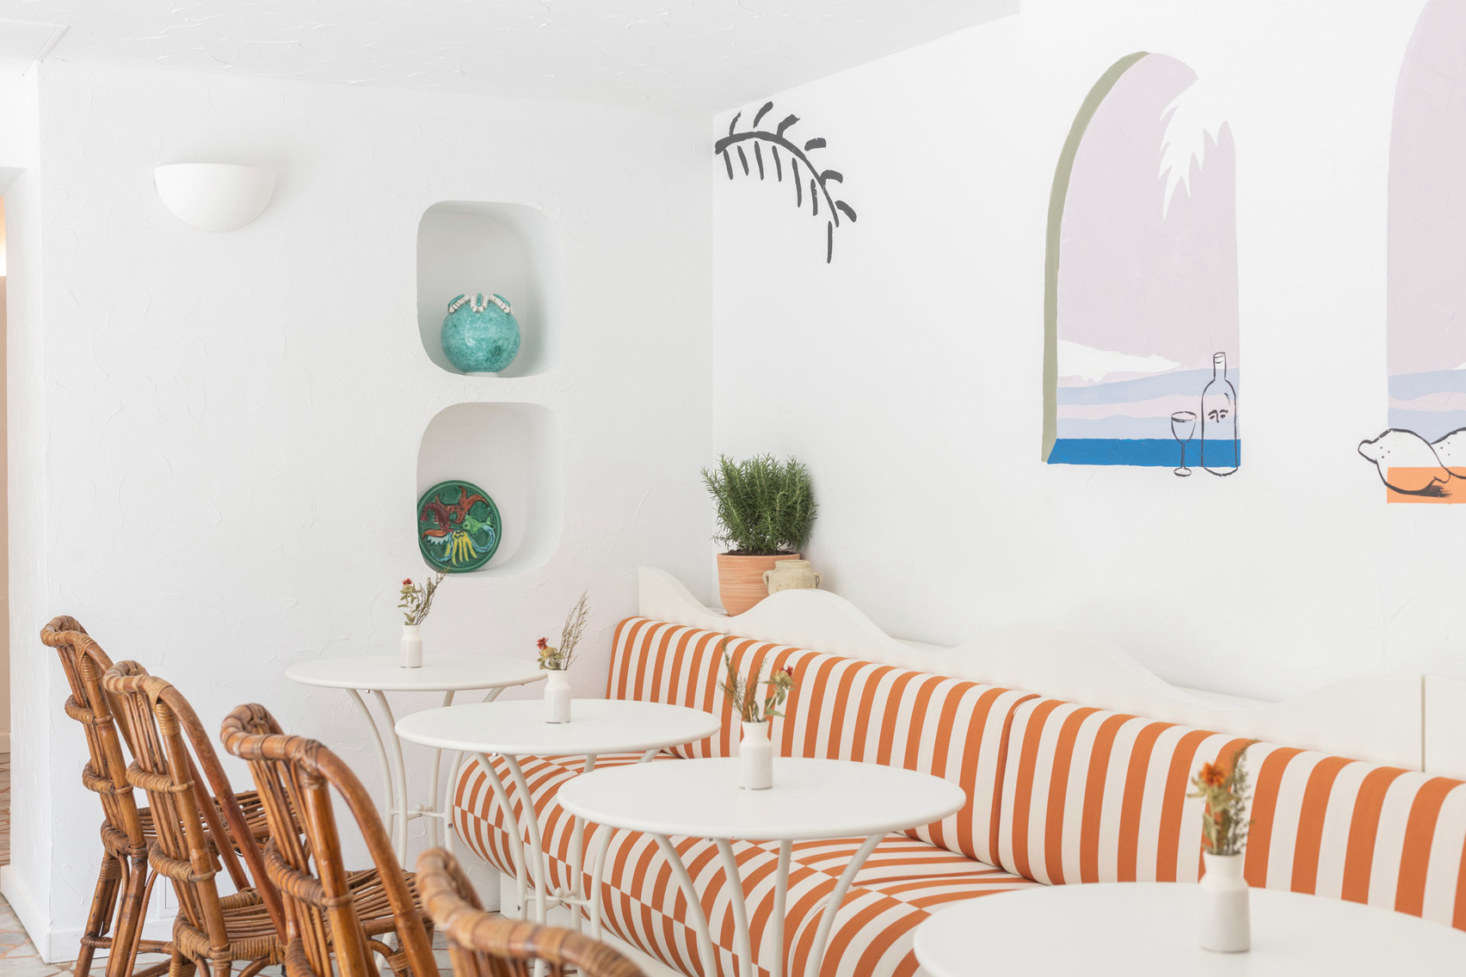 French artist Franck Lebraly painted a whimsical mural above the striped banquette in the cafe.